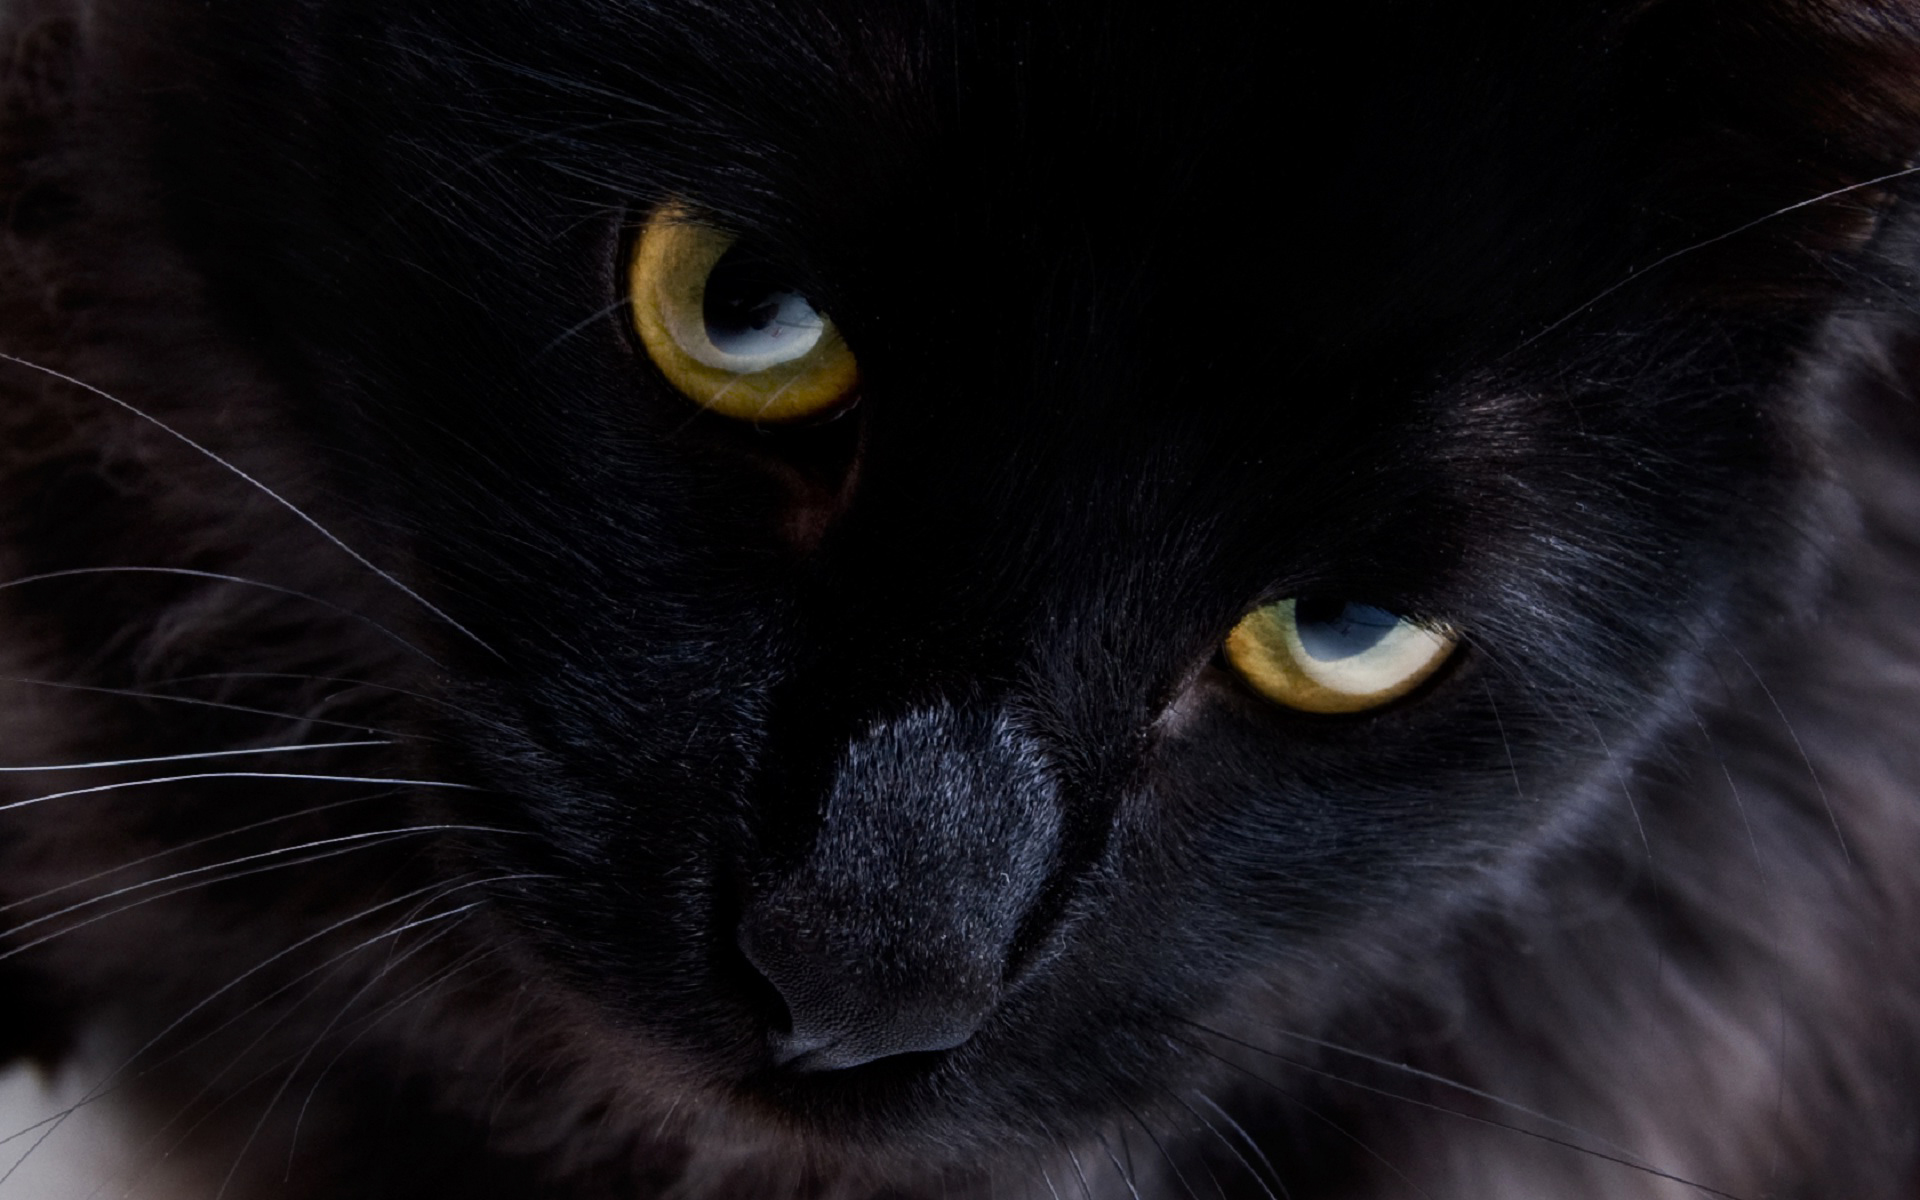 Persian black cat